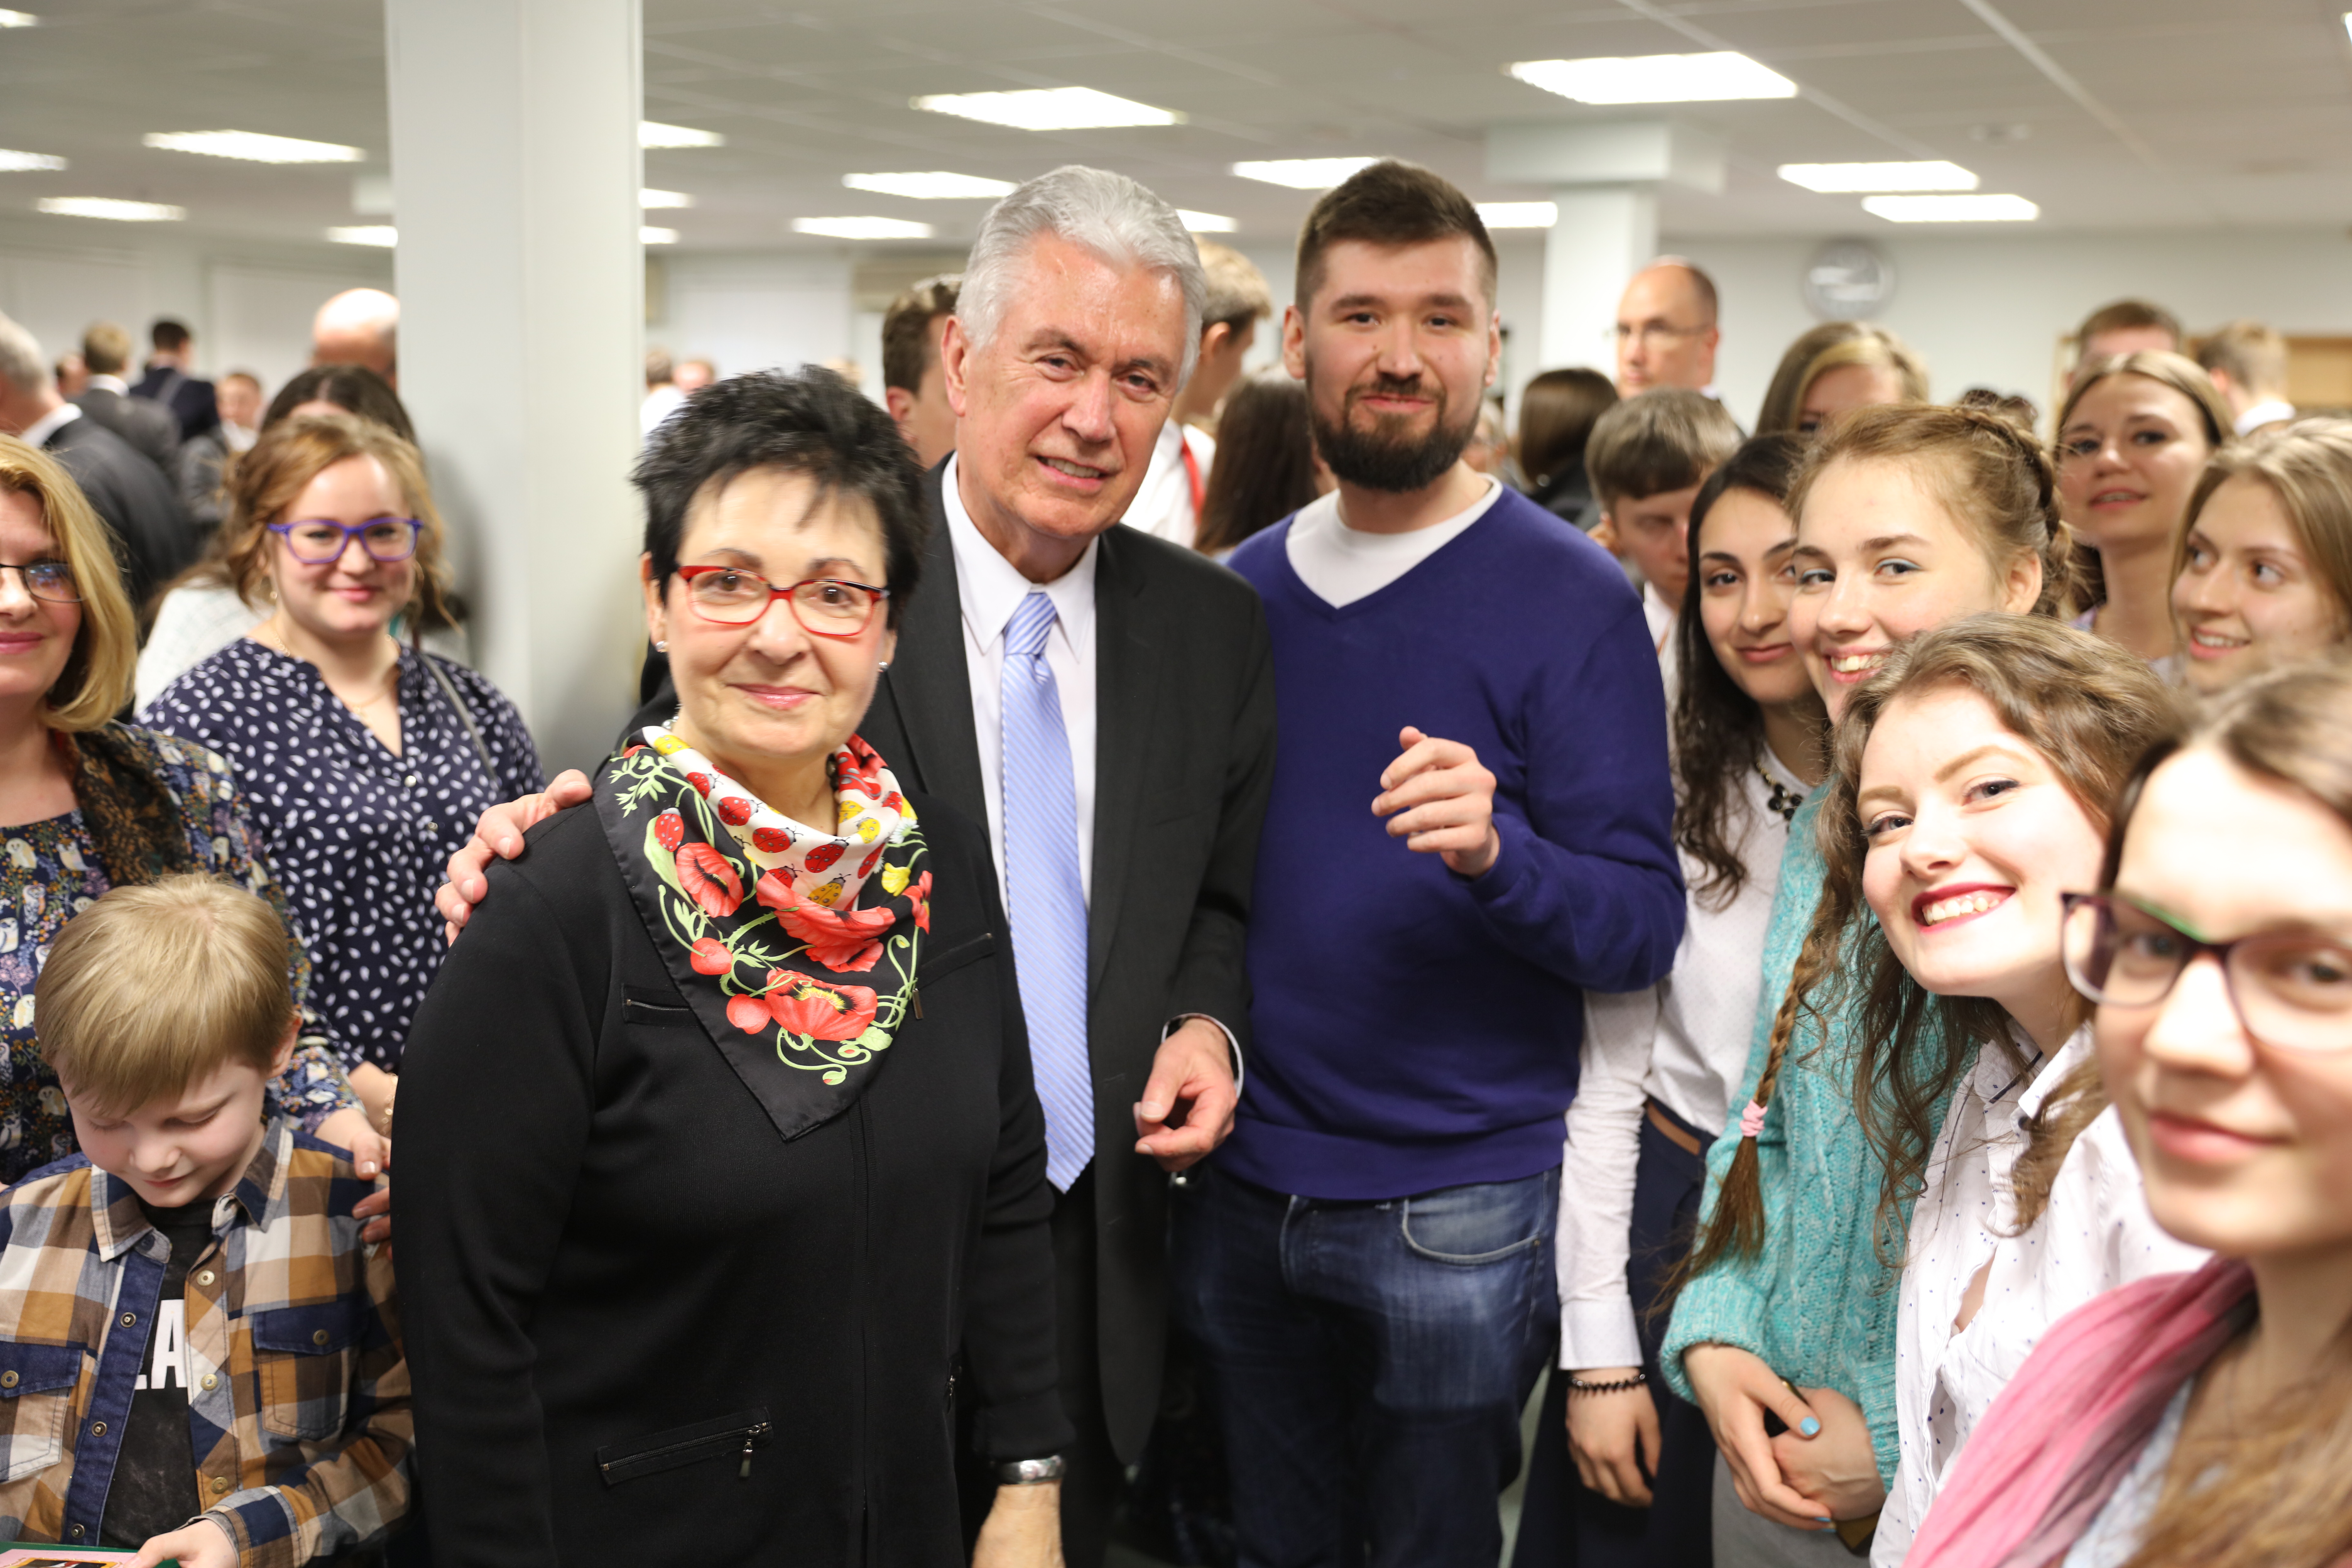 Elder Dieter F. Uchtdorf of the Quorum of the Twelve Apostles and his wife, Sister Harriet Uchtdorf, pause after meeting with young single adults in Moscow, Russia, on April 24, 2018.